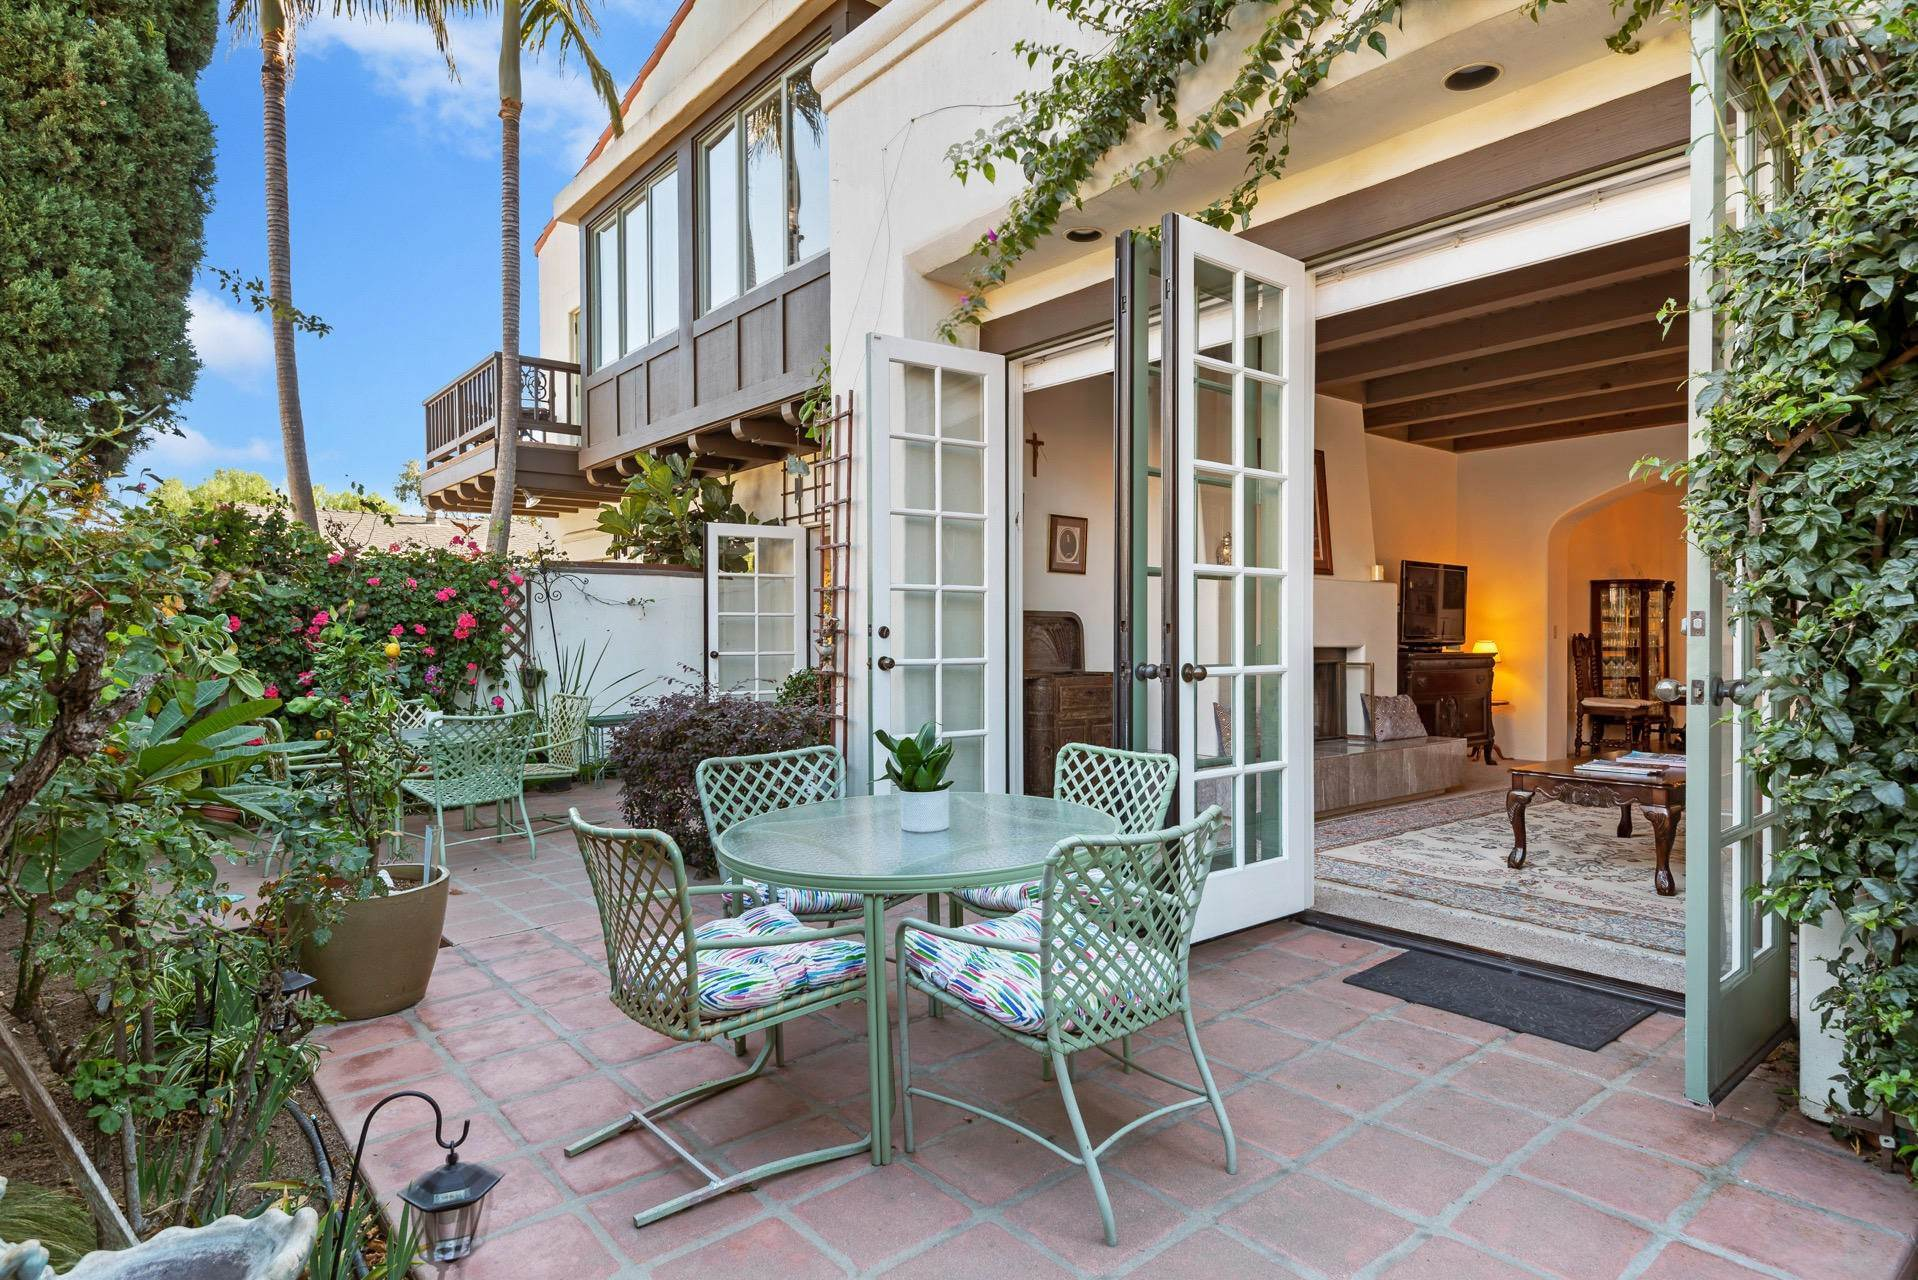 6. Co-op / Condo at 1024 Garden Street Santa Barbara, California 93101 United States